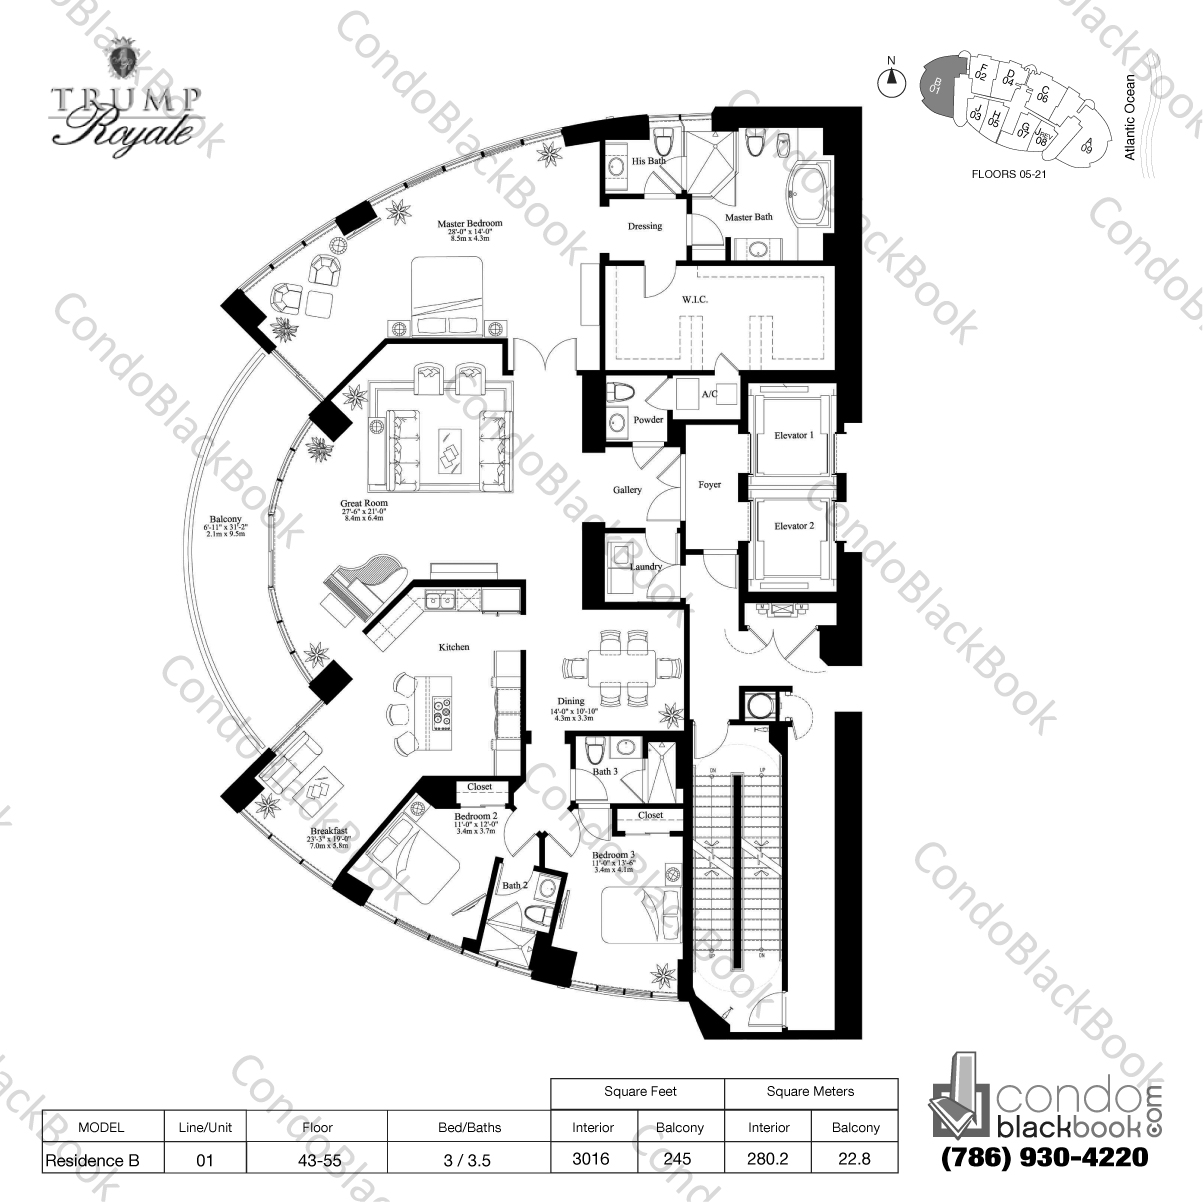 Floor plan for Trump Royale Sunny Isles Beach, model Residence B, line 01, 3 / 3.5 bedrooms, 3016 sq ft